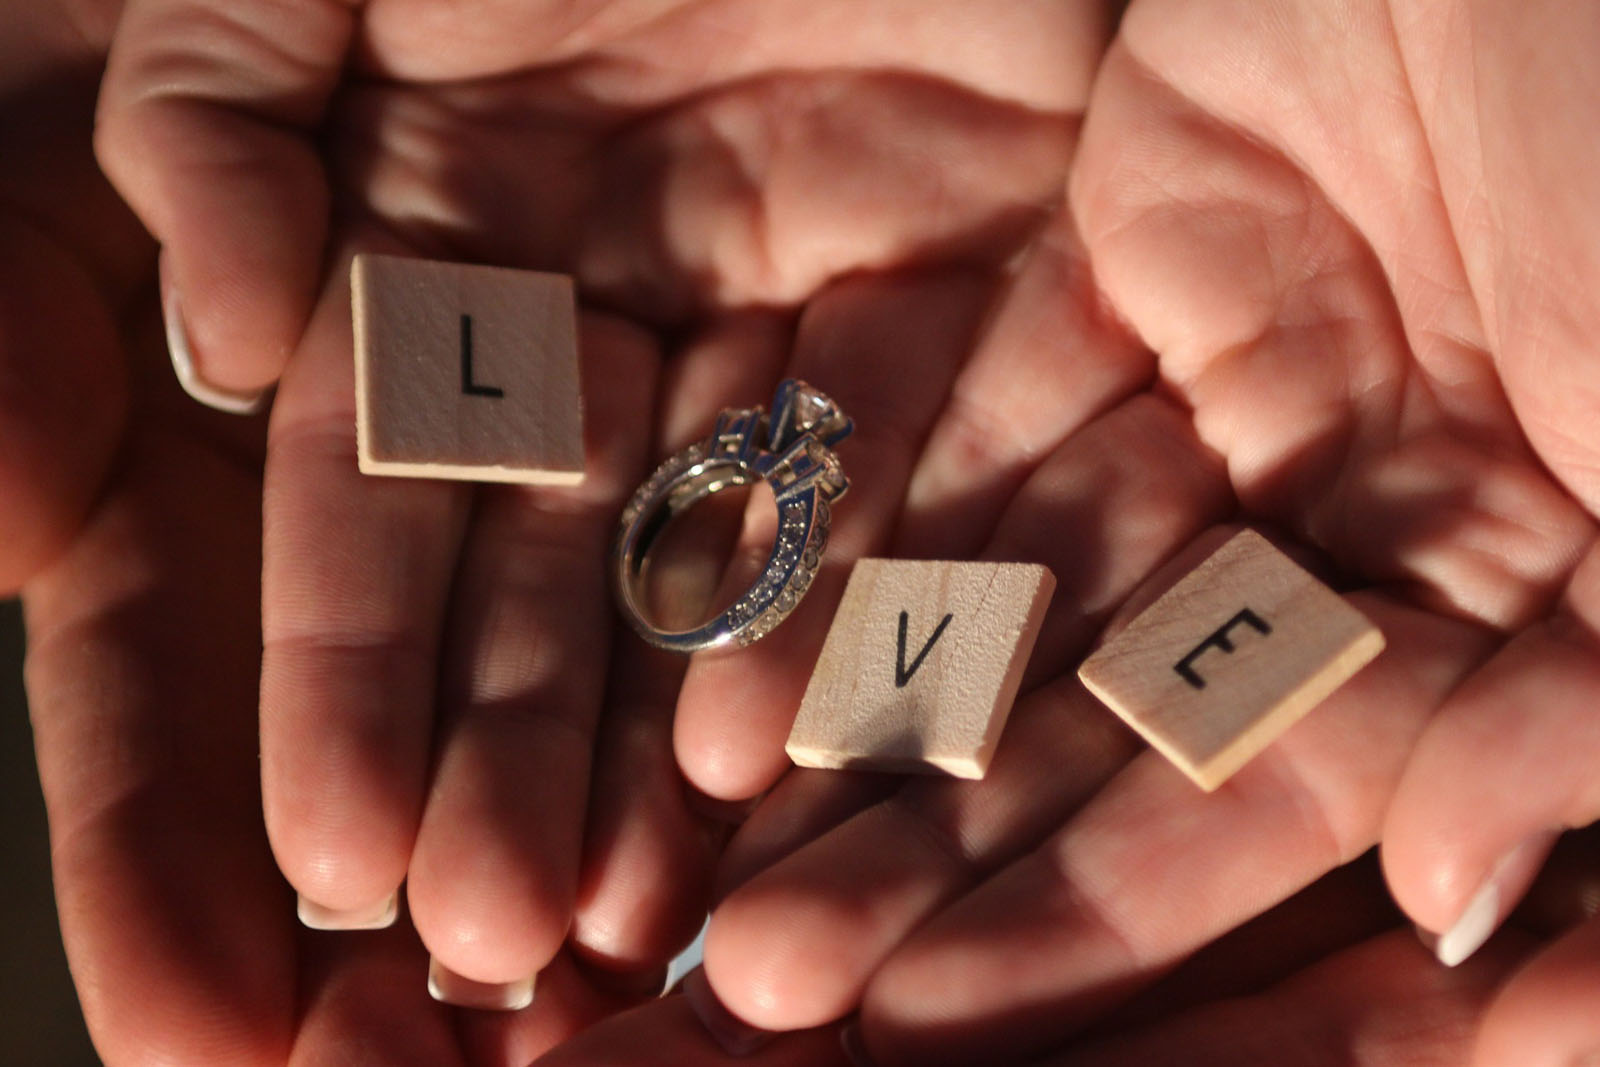 Love tiles and engagement ring